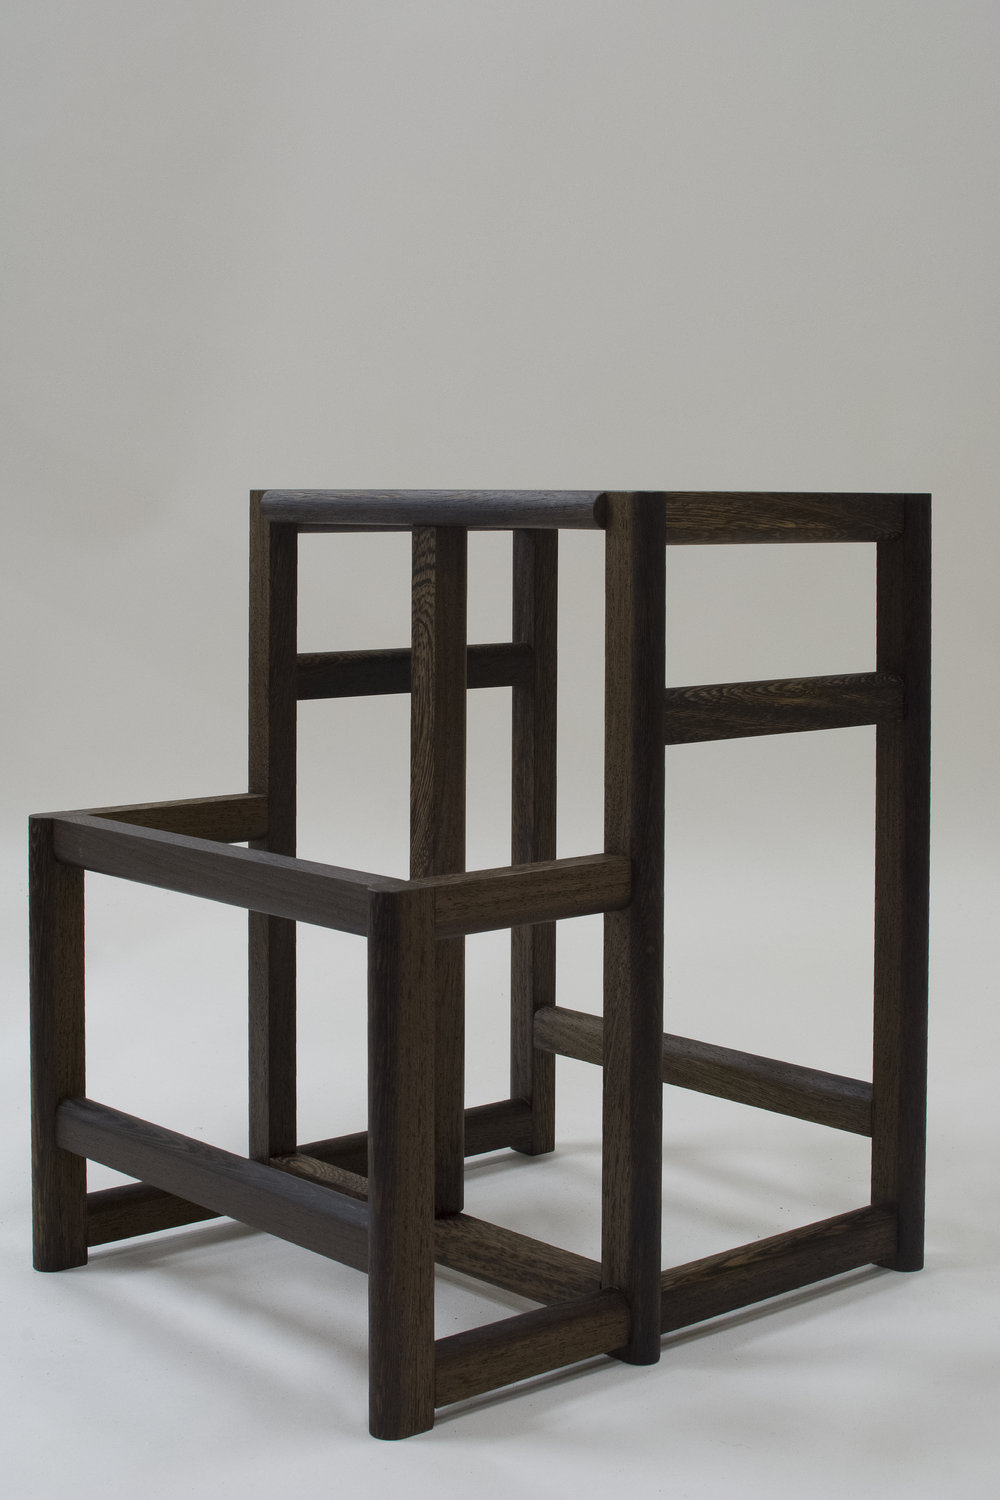 NEW_ORN-DUVALD_SI-STOOL_01.jpg